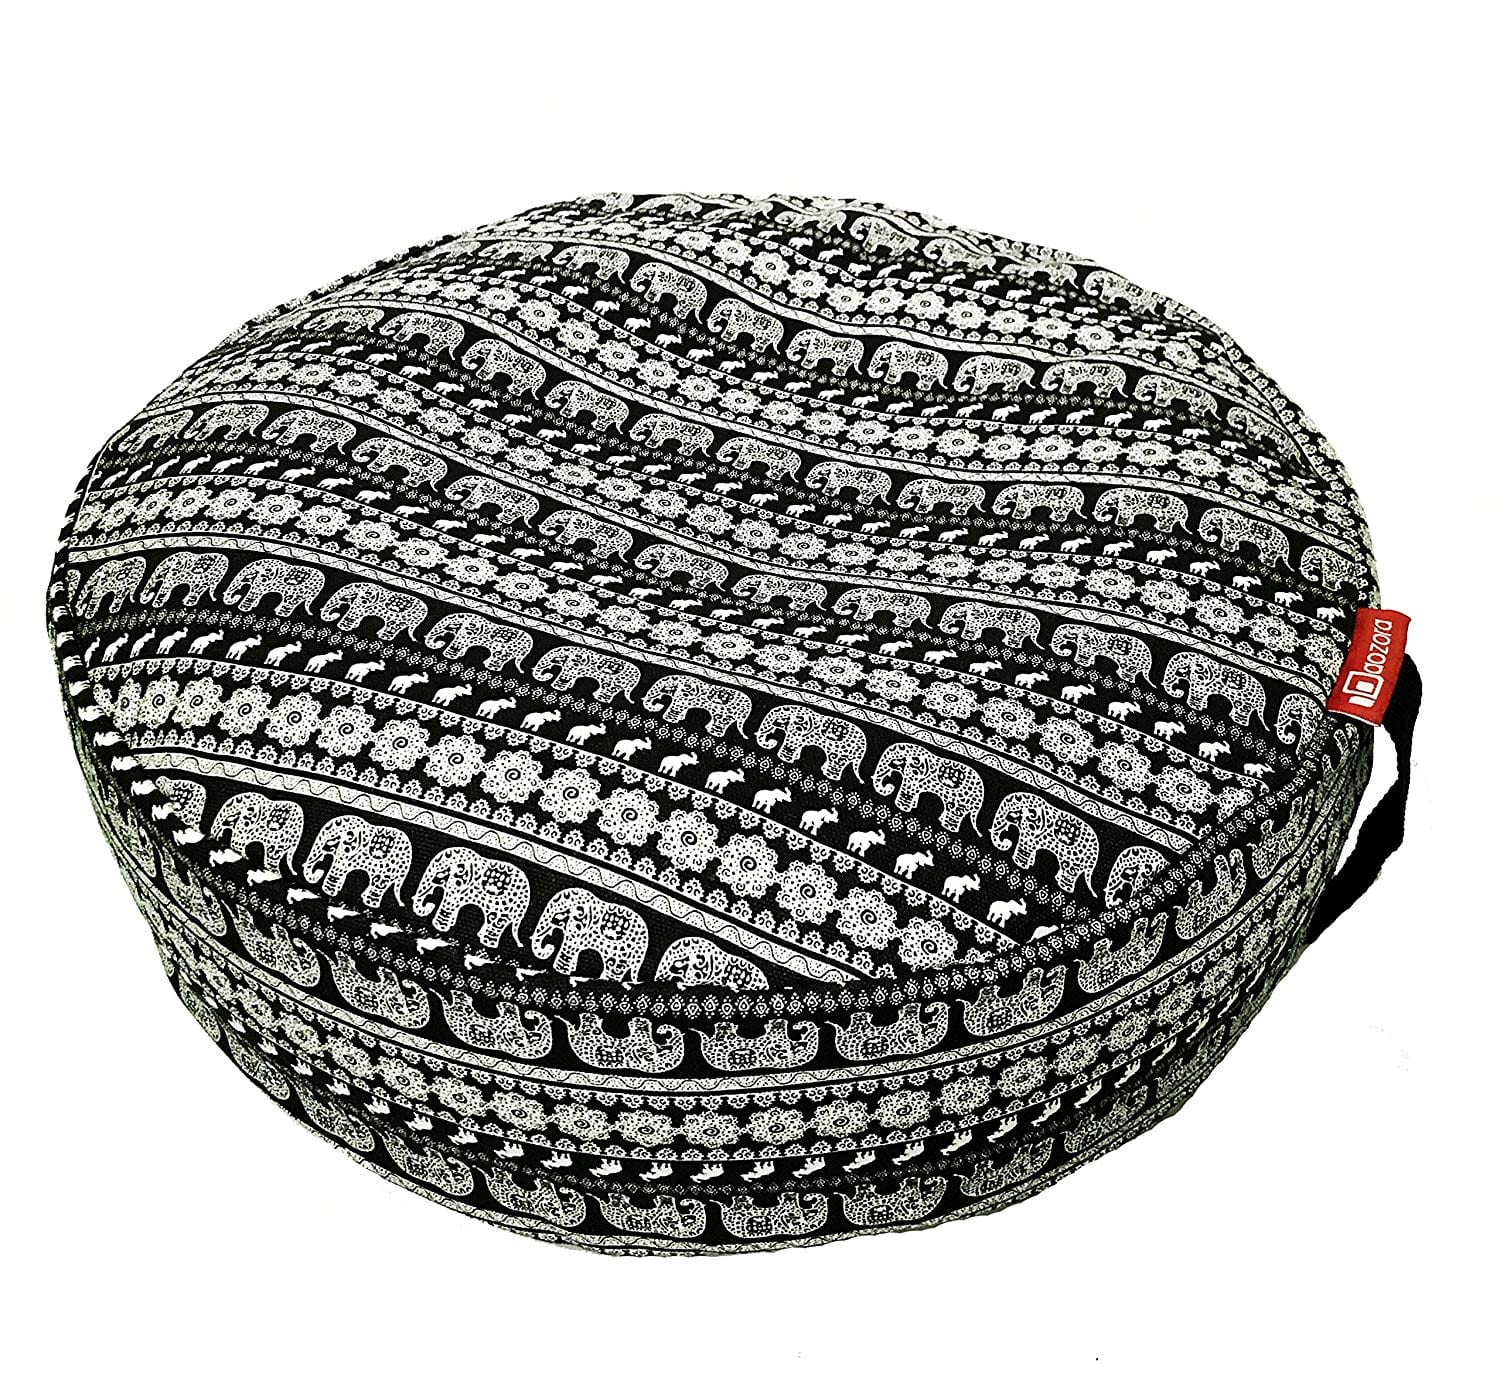 Aozora Meditation Pillow Review by www.snoremagazine.com